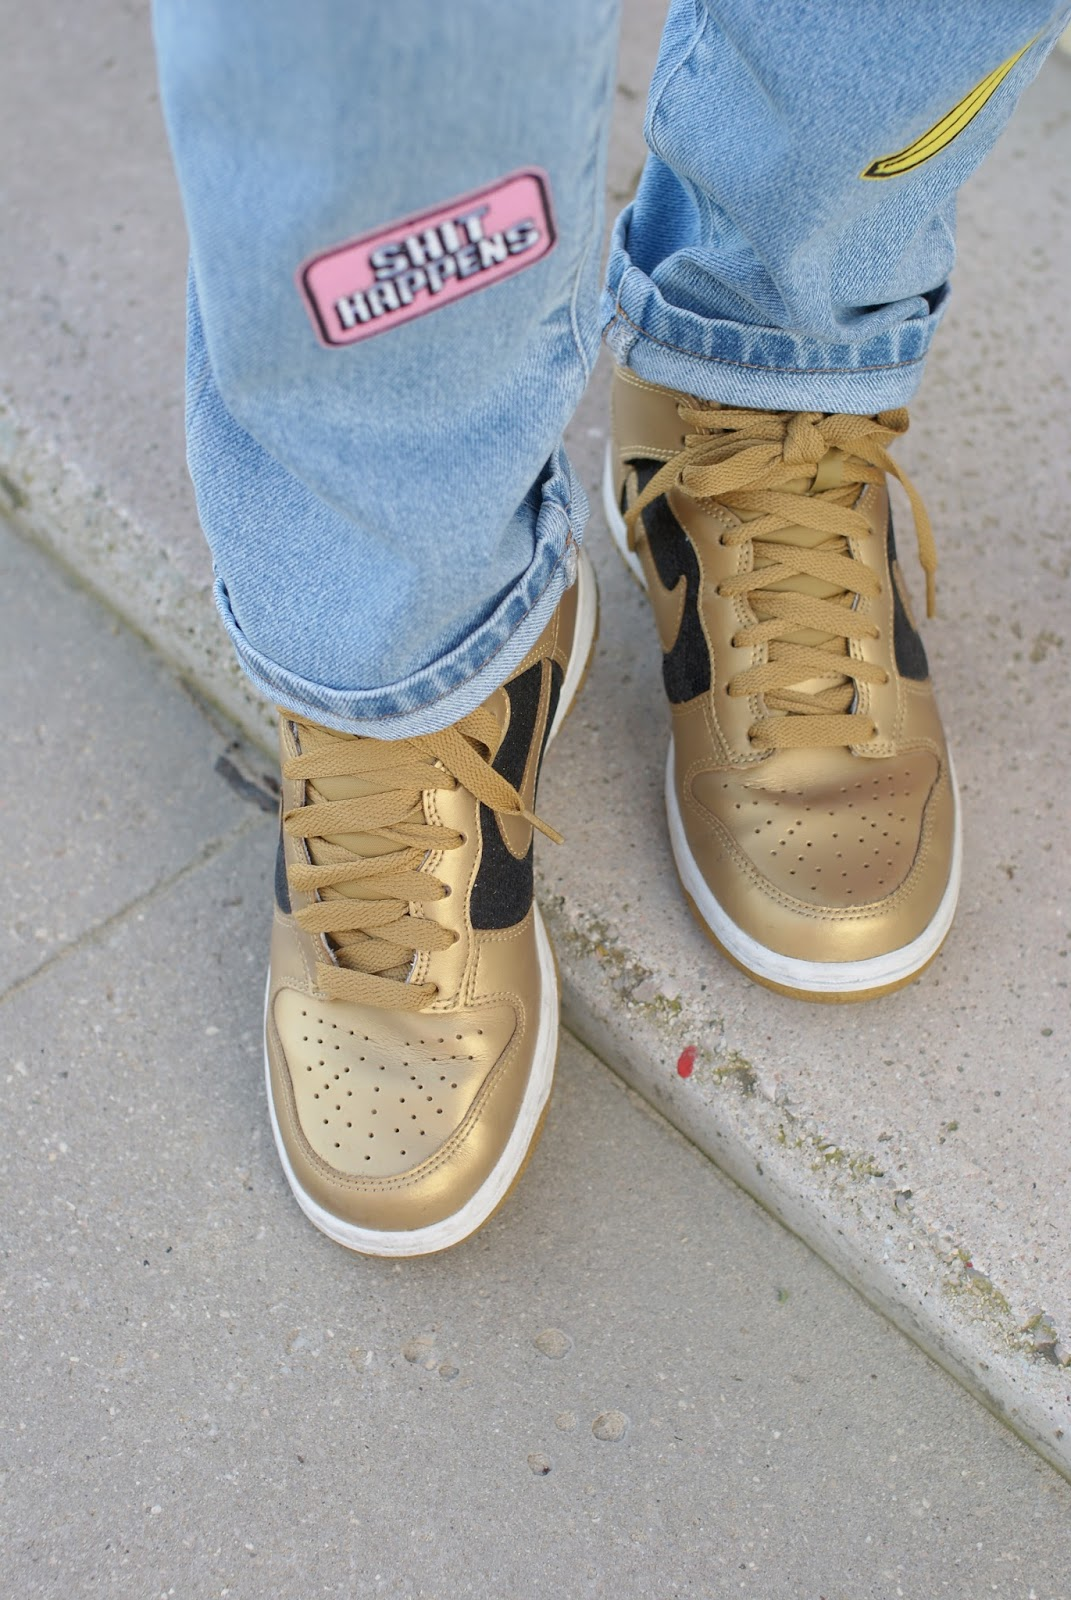 Nike golden trainers, Nike sneakers and shit happens patch on Fashion and Cookies fashion blog, fashion blogger style